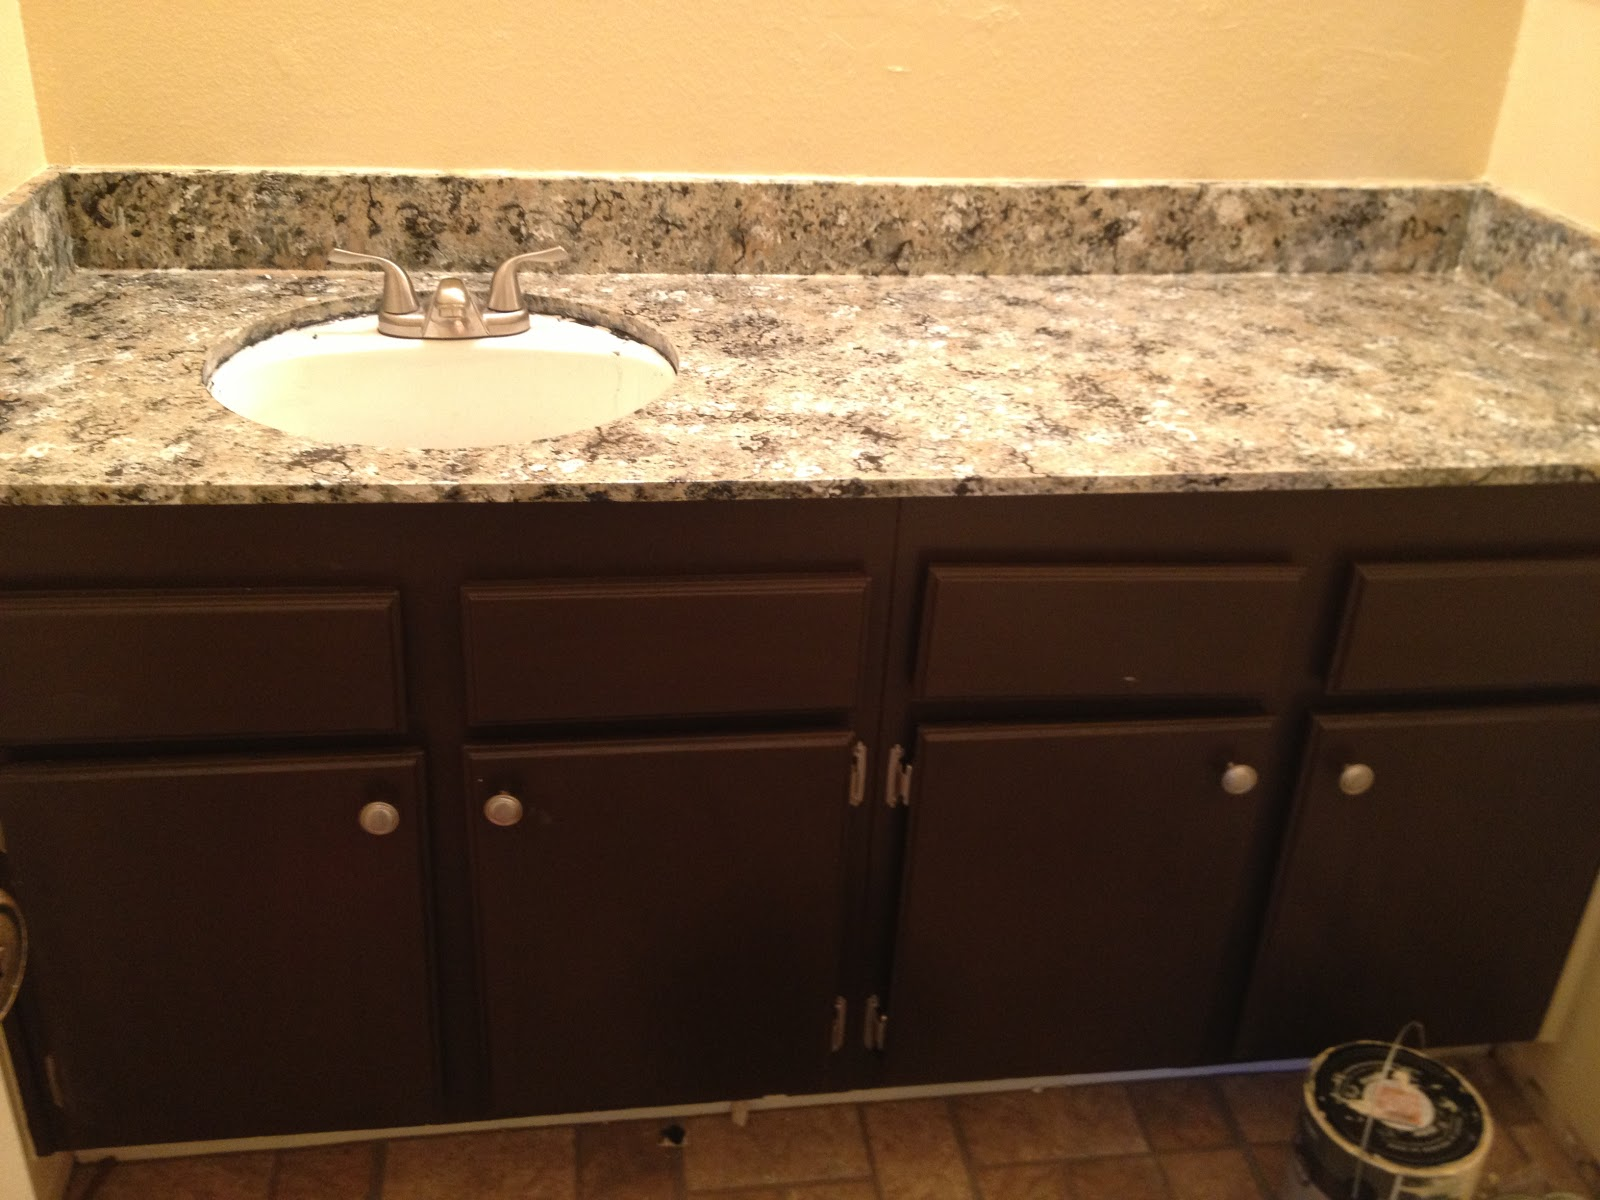 How to paint bathroom countertops - Giani Granite Countertop Paint Bathroom Remodel